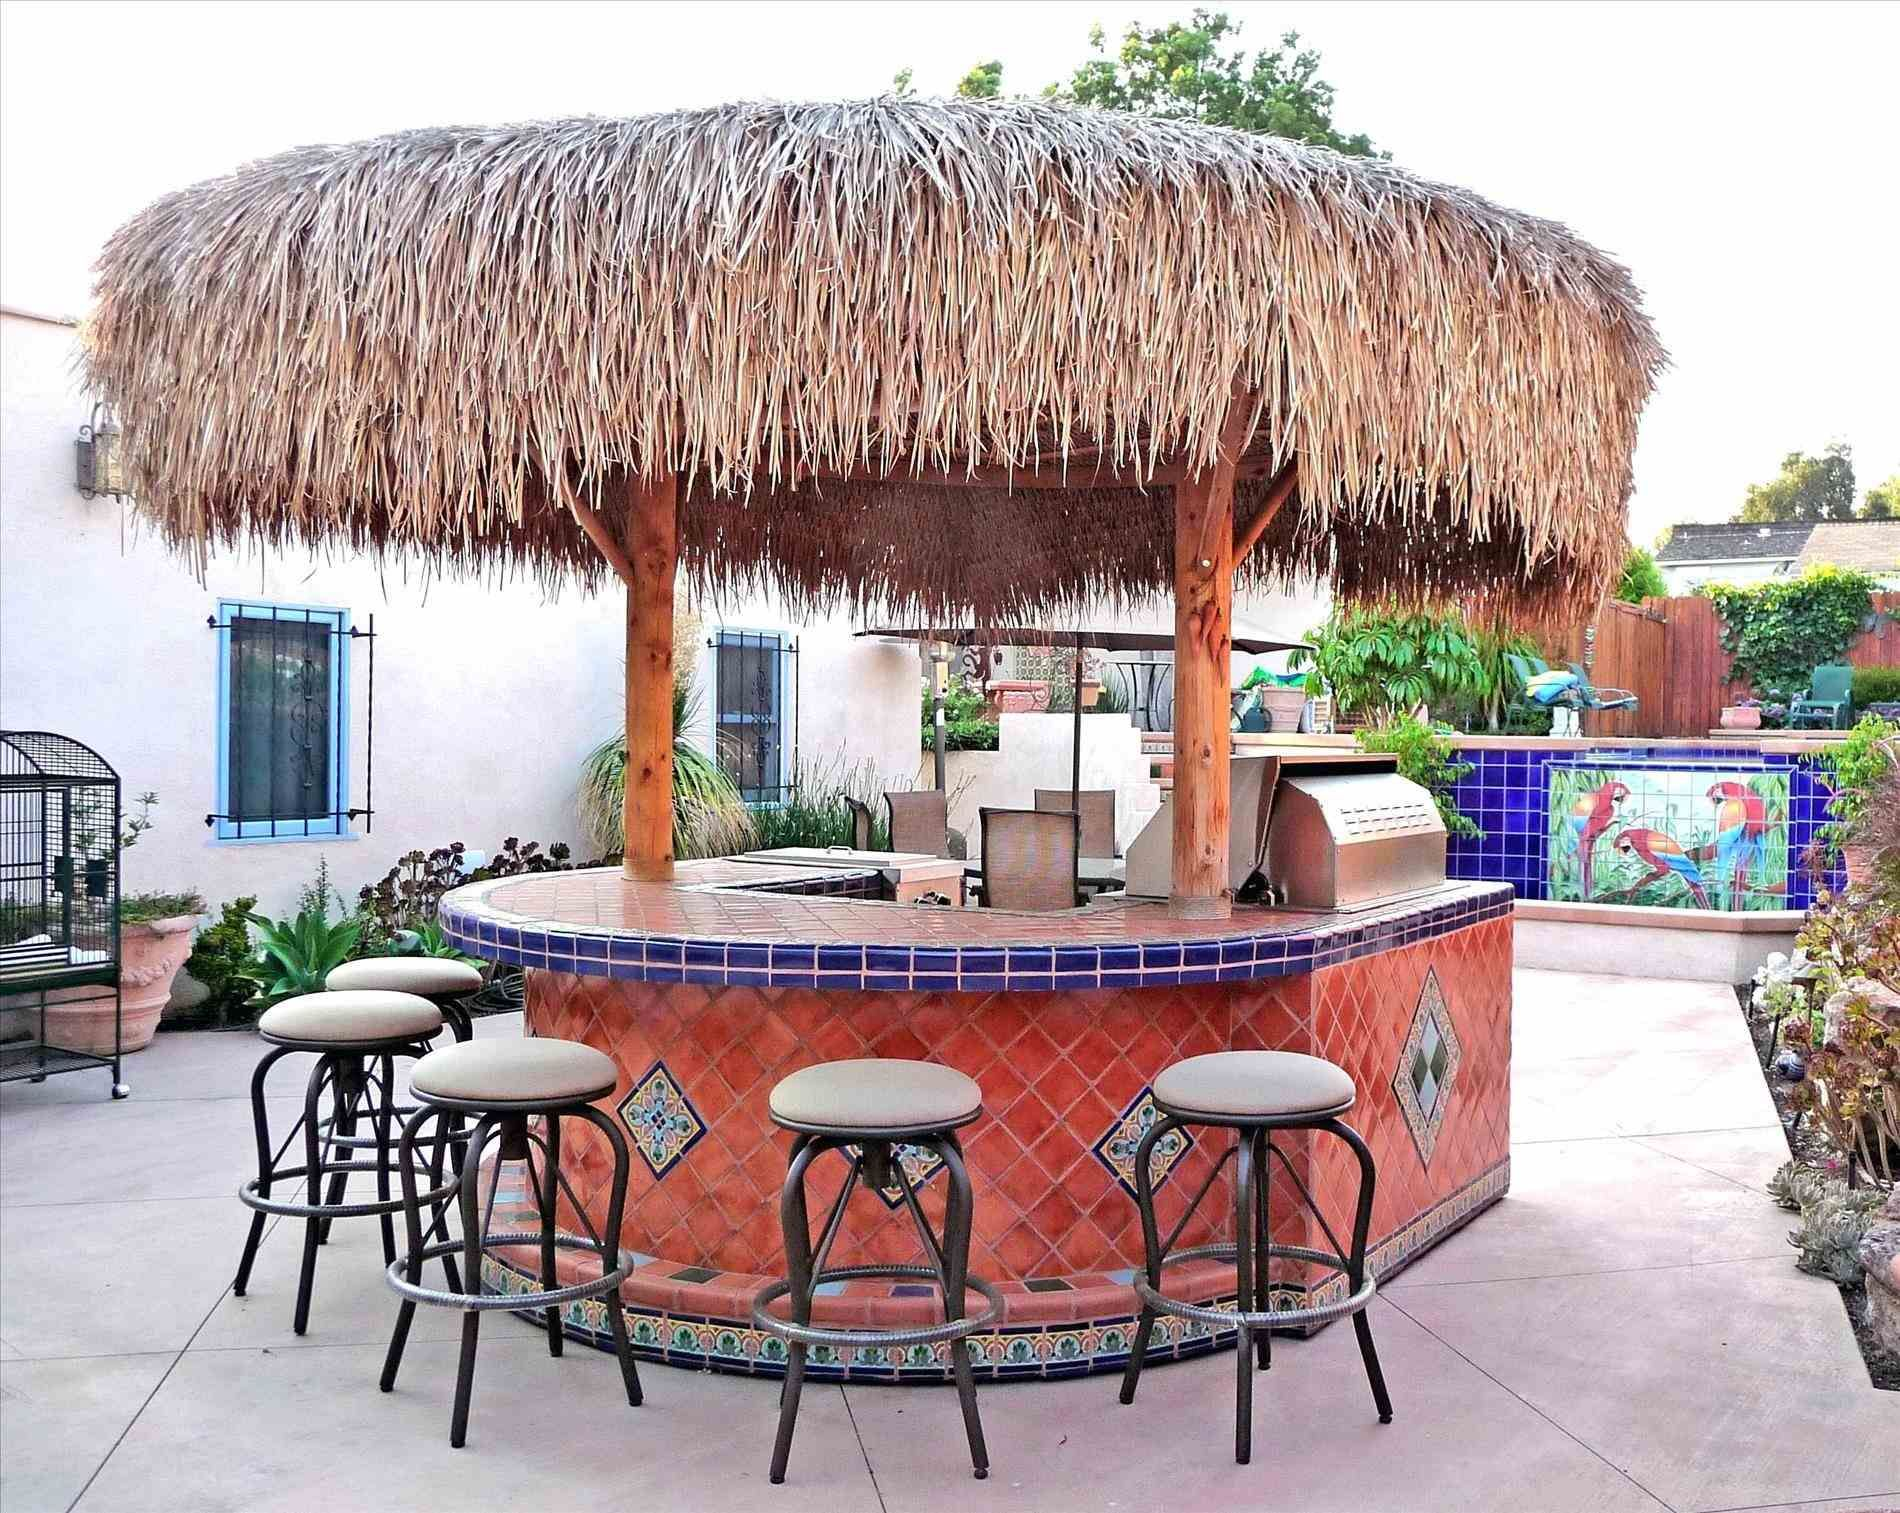 Pin by Joyce Labrinos on Exterior Remodel | Mexican patio ... on Mexican Patio Ideas id=42538